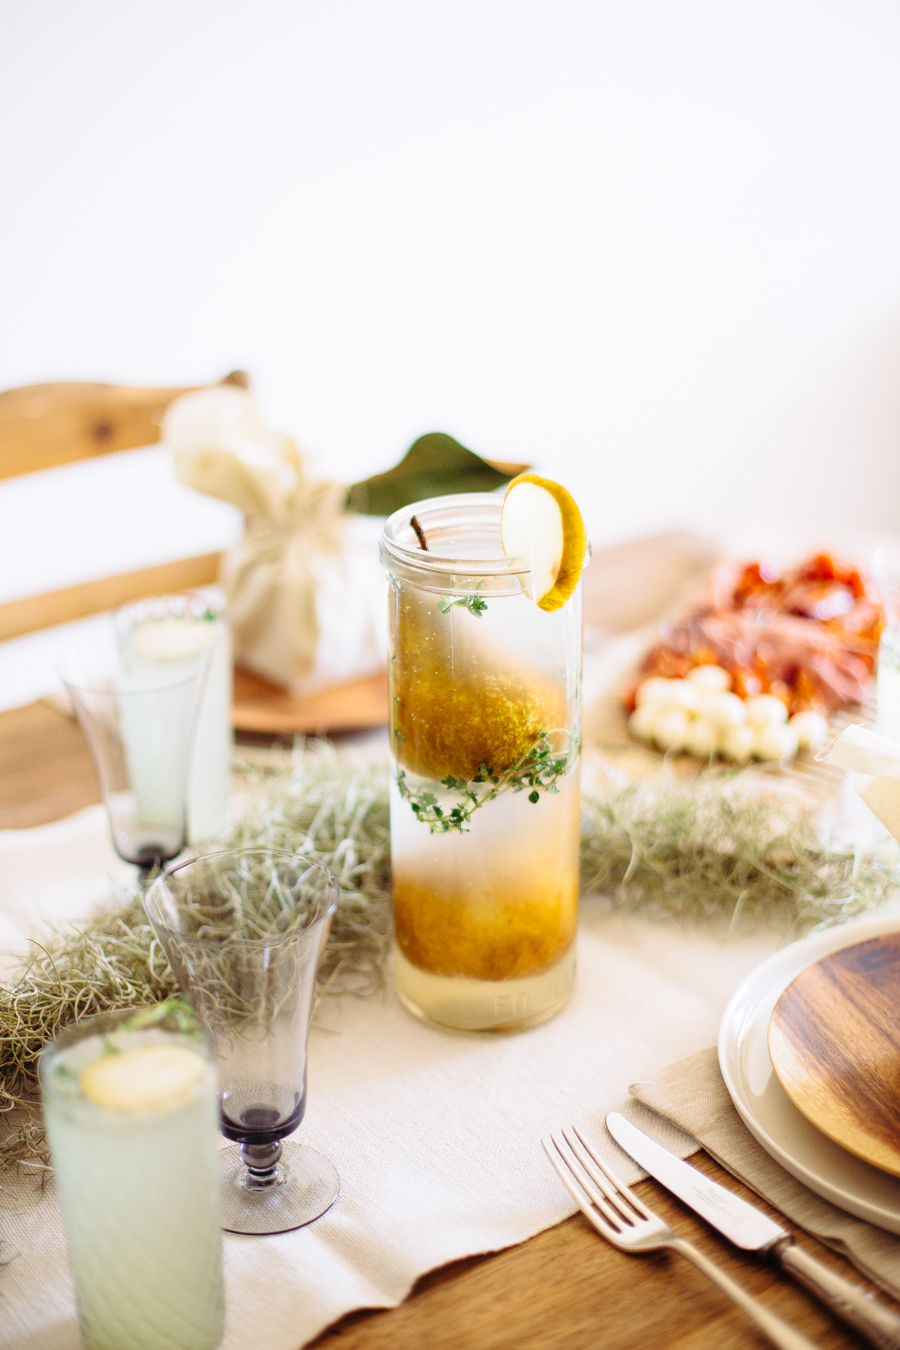 sonjacphotography-foodstyling-1a-2